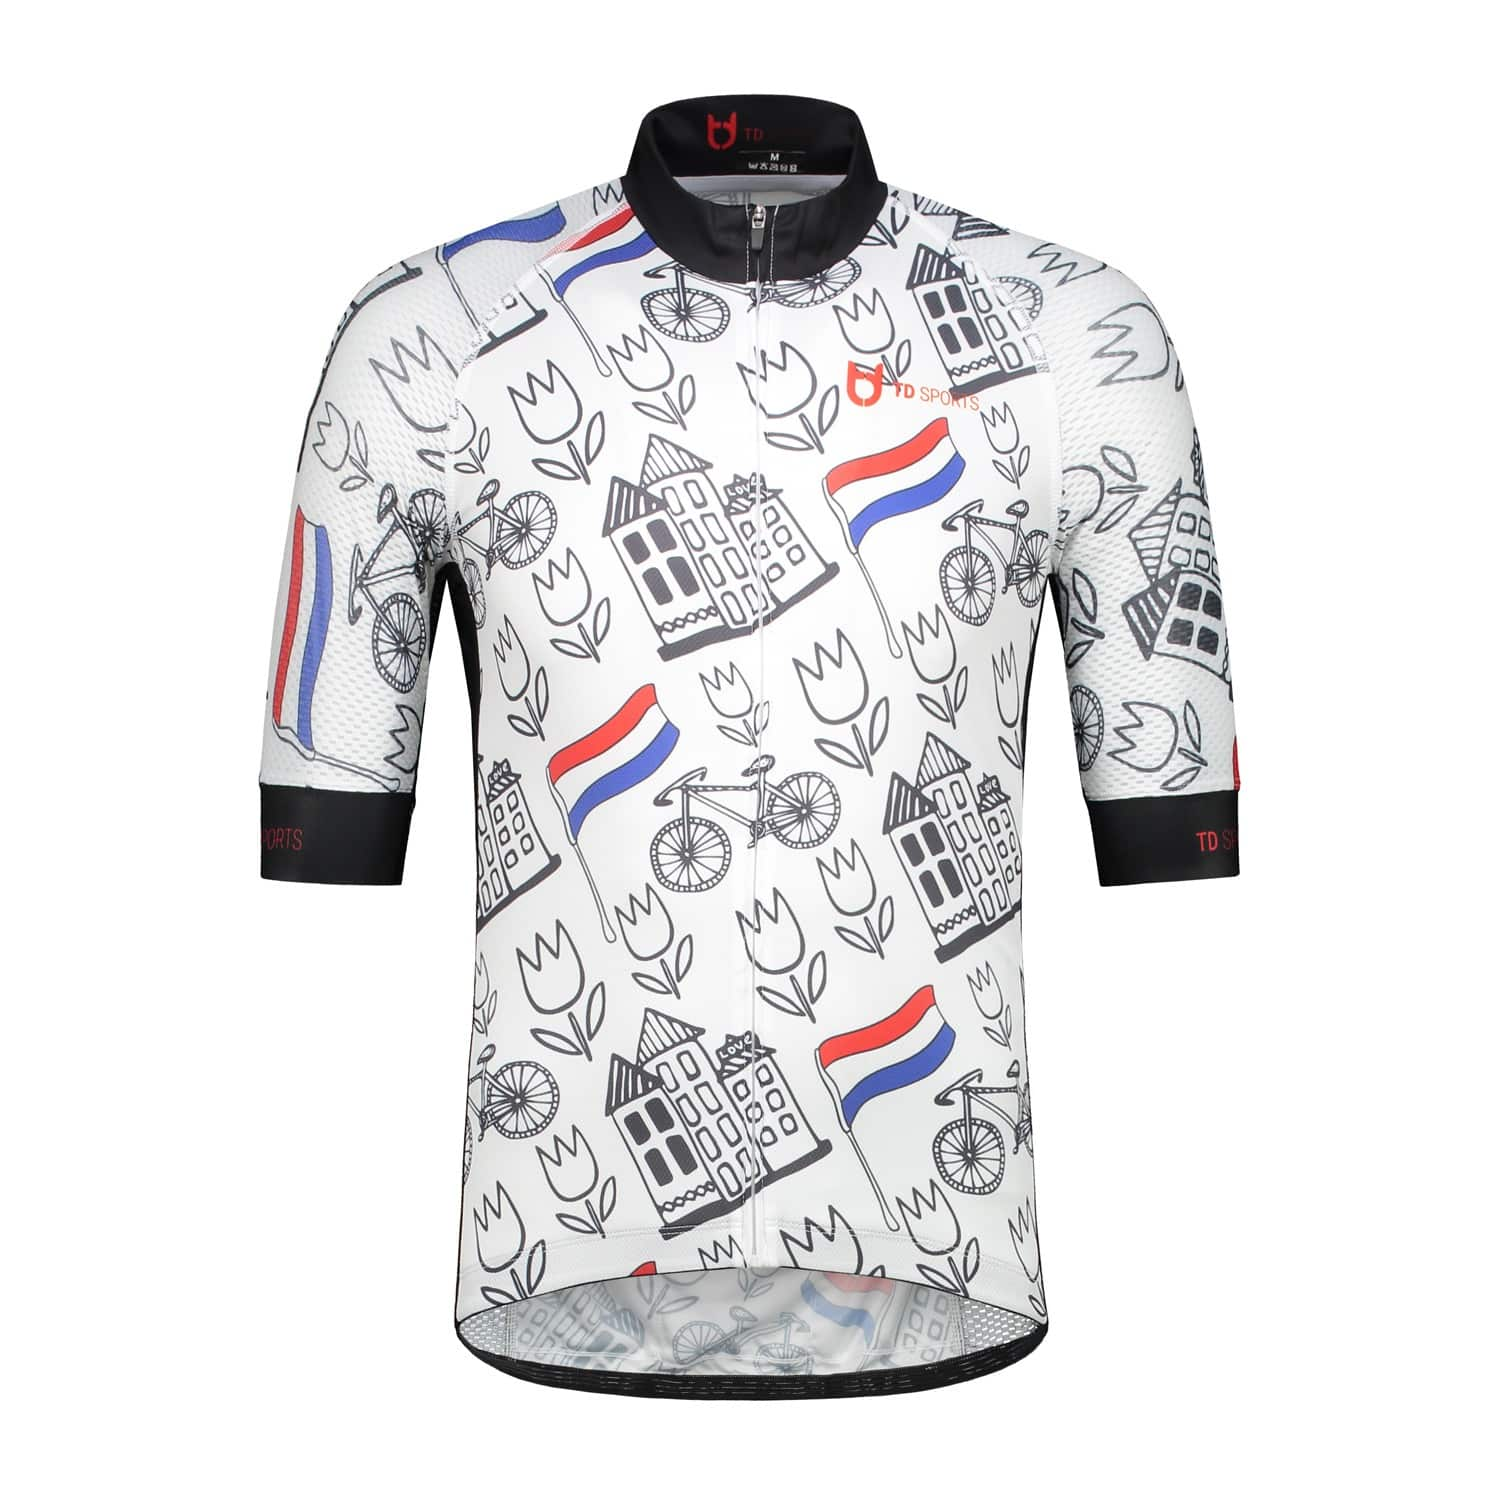 Dutch Holland cycling jersey TD sportswear